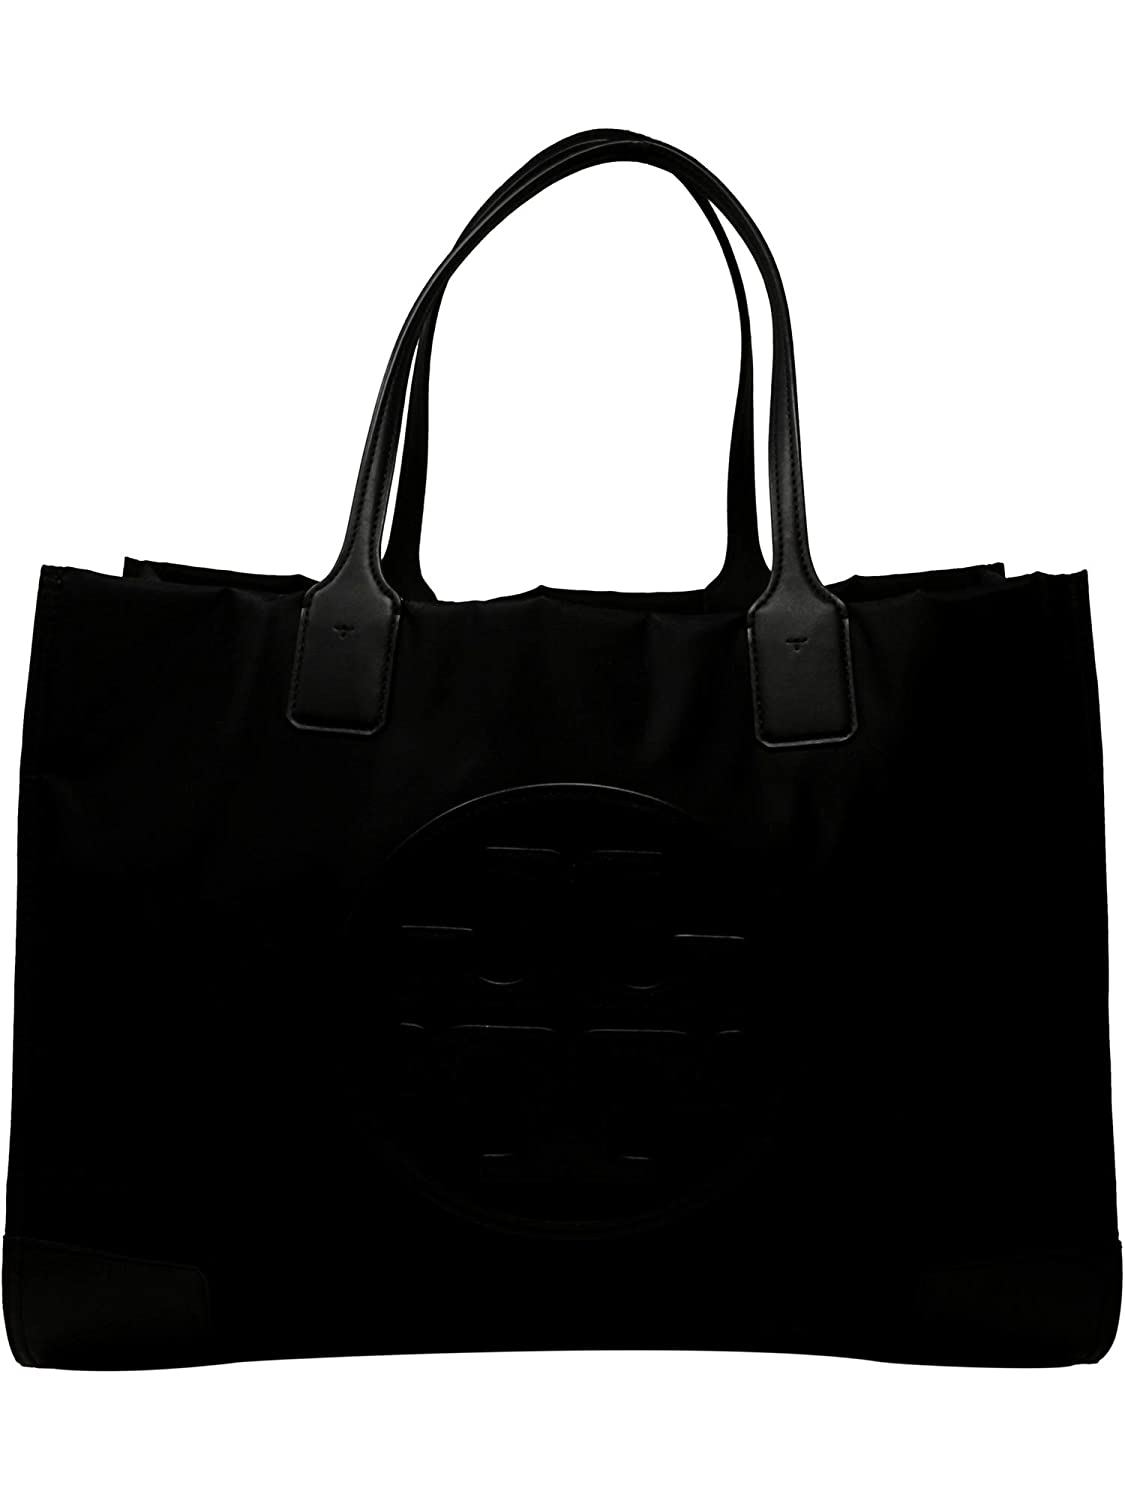 5254ea5fb451 Amazon.com  Tory Burch Women s Ella Nylon Top-Handle Bag Tote - Black  Tory  Burch  Shoes